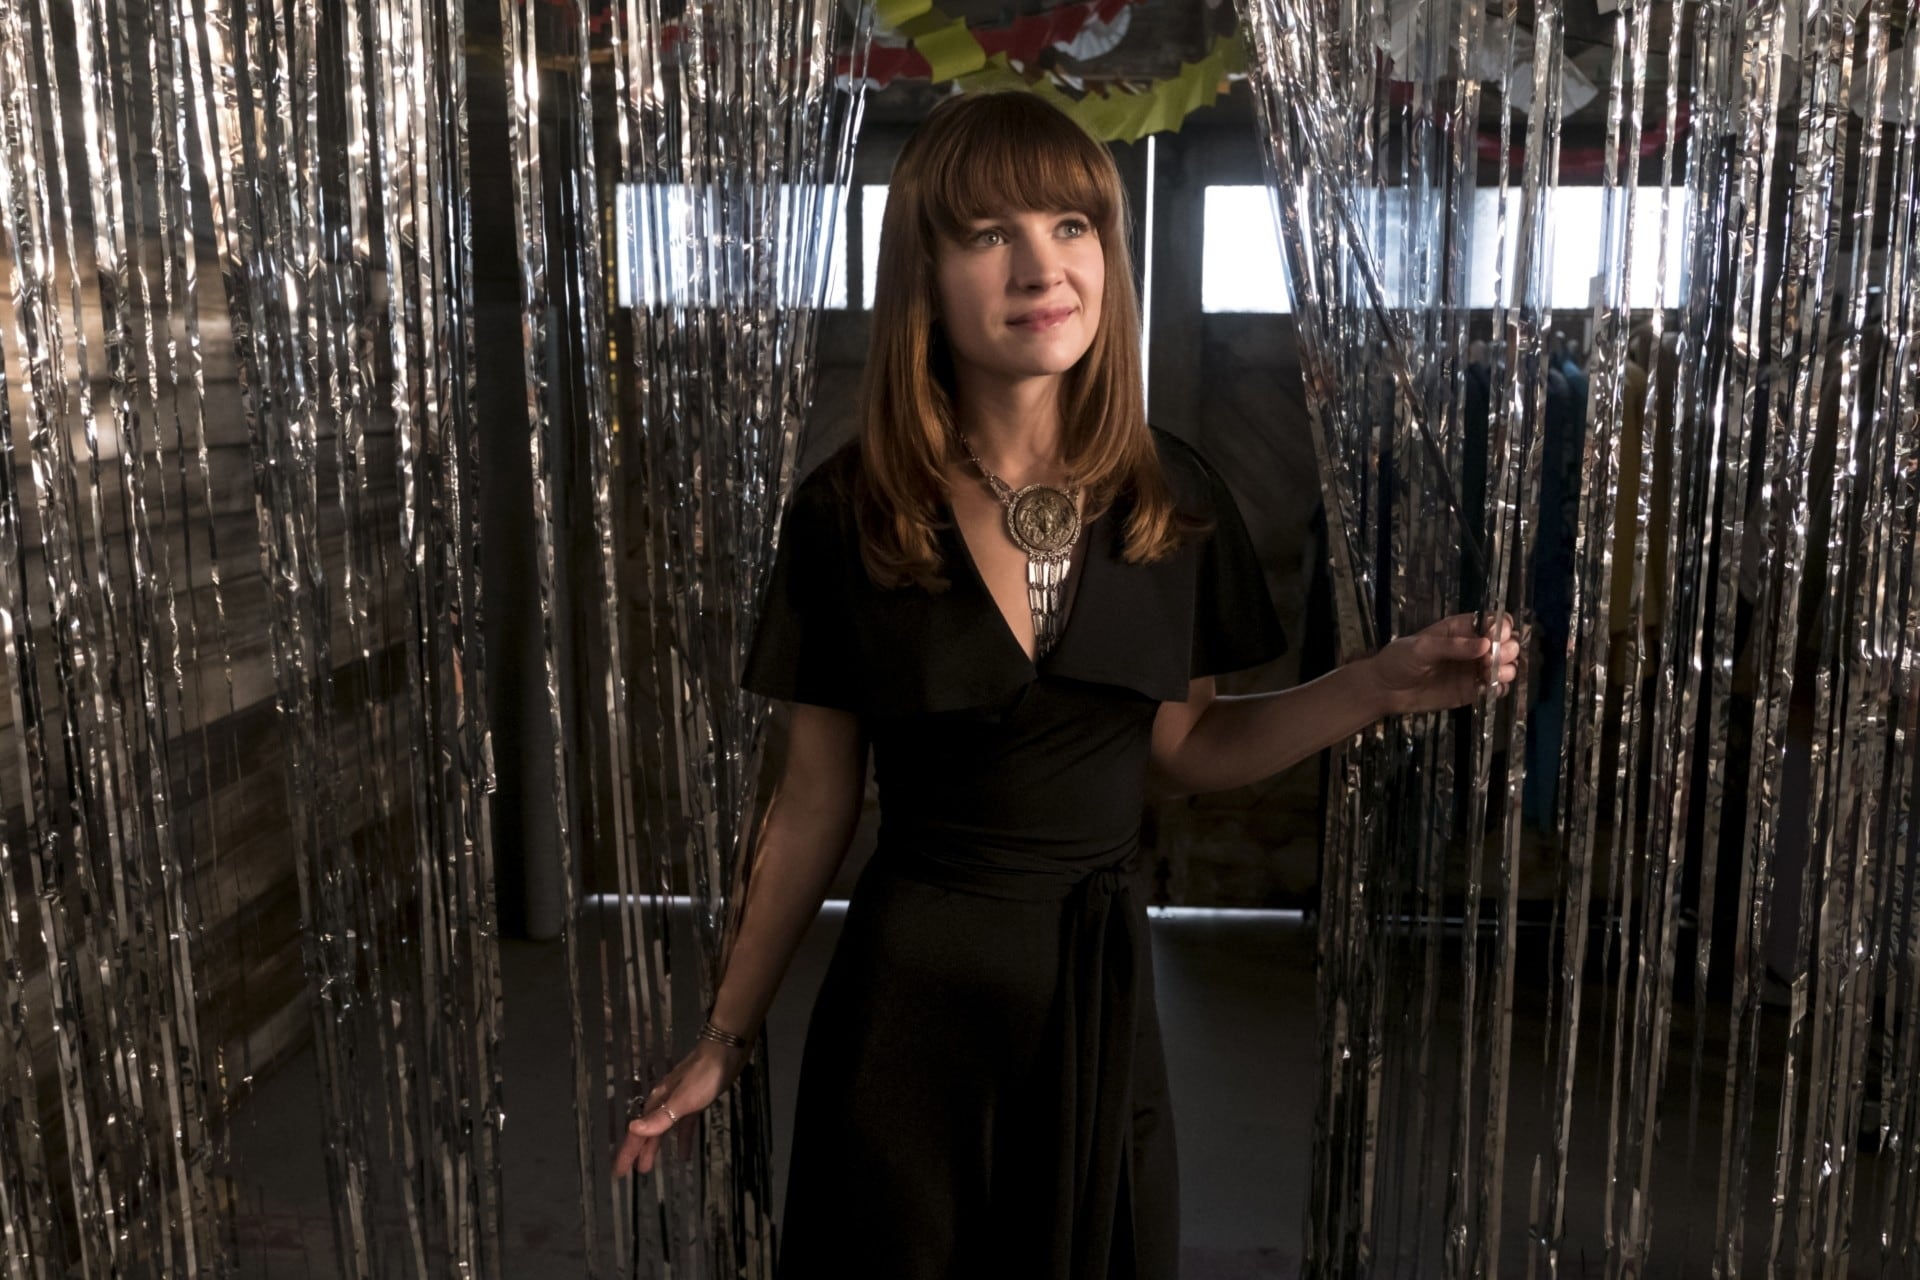 You're really not meant to like the lead character in Netflix's Girlboss